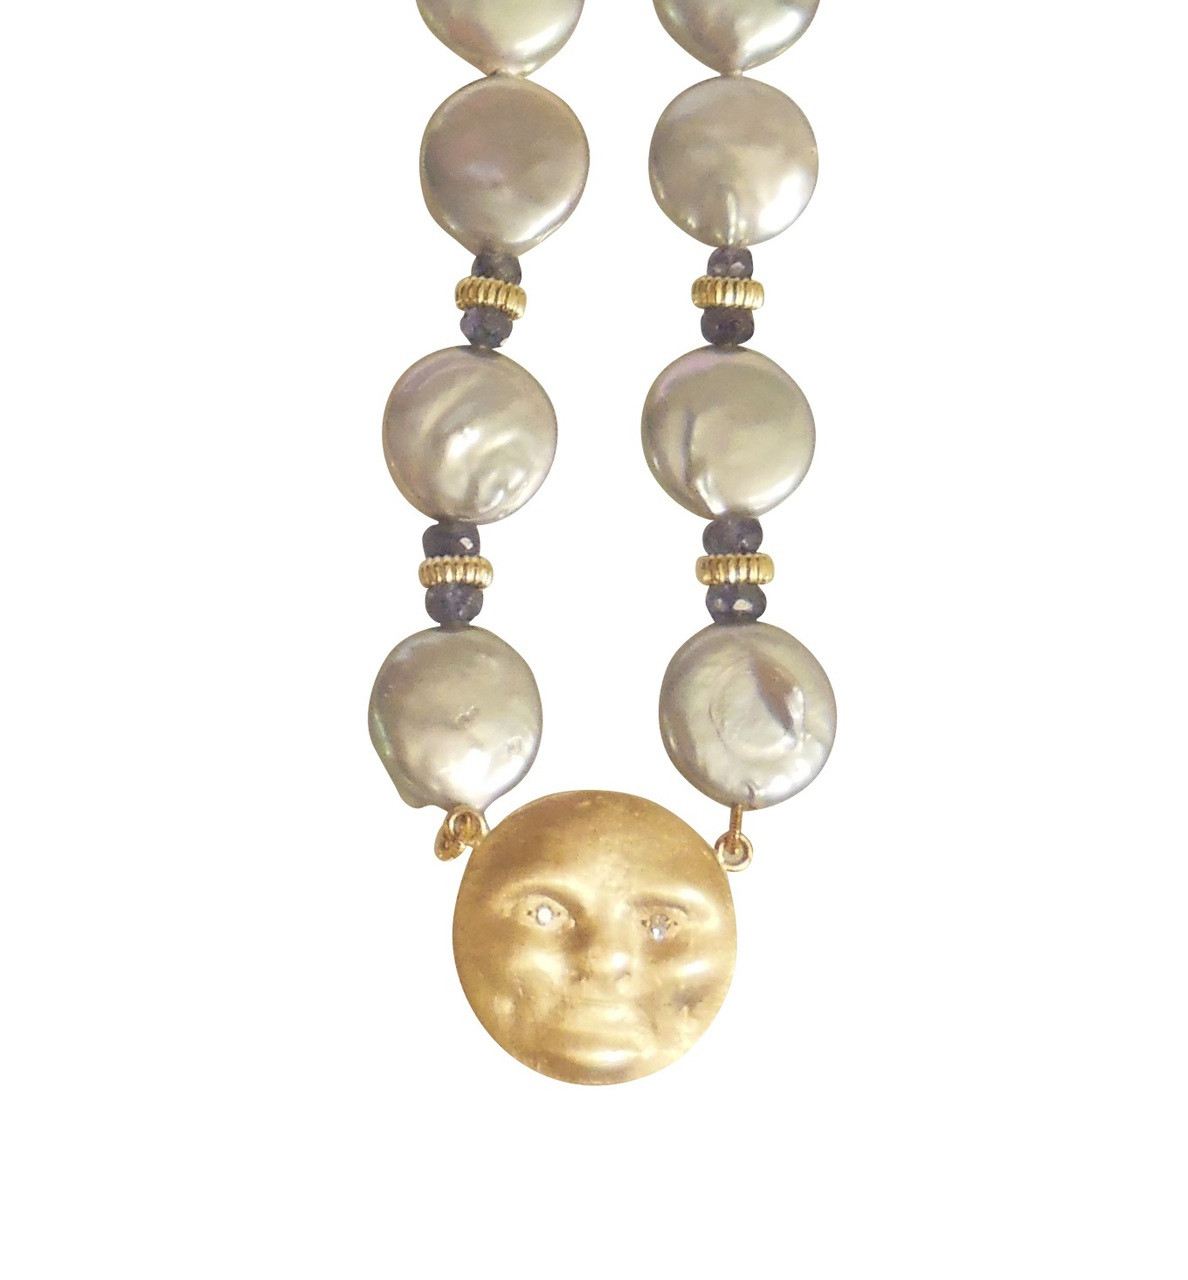 14K Gold Face, Diamond Eyes on coin pearl necklace with sapphires: small